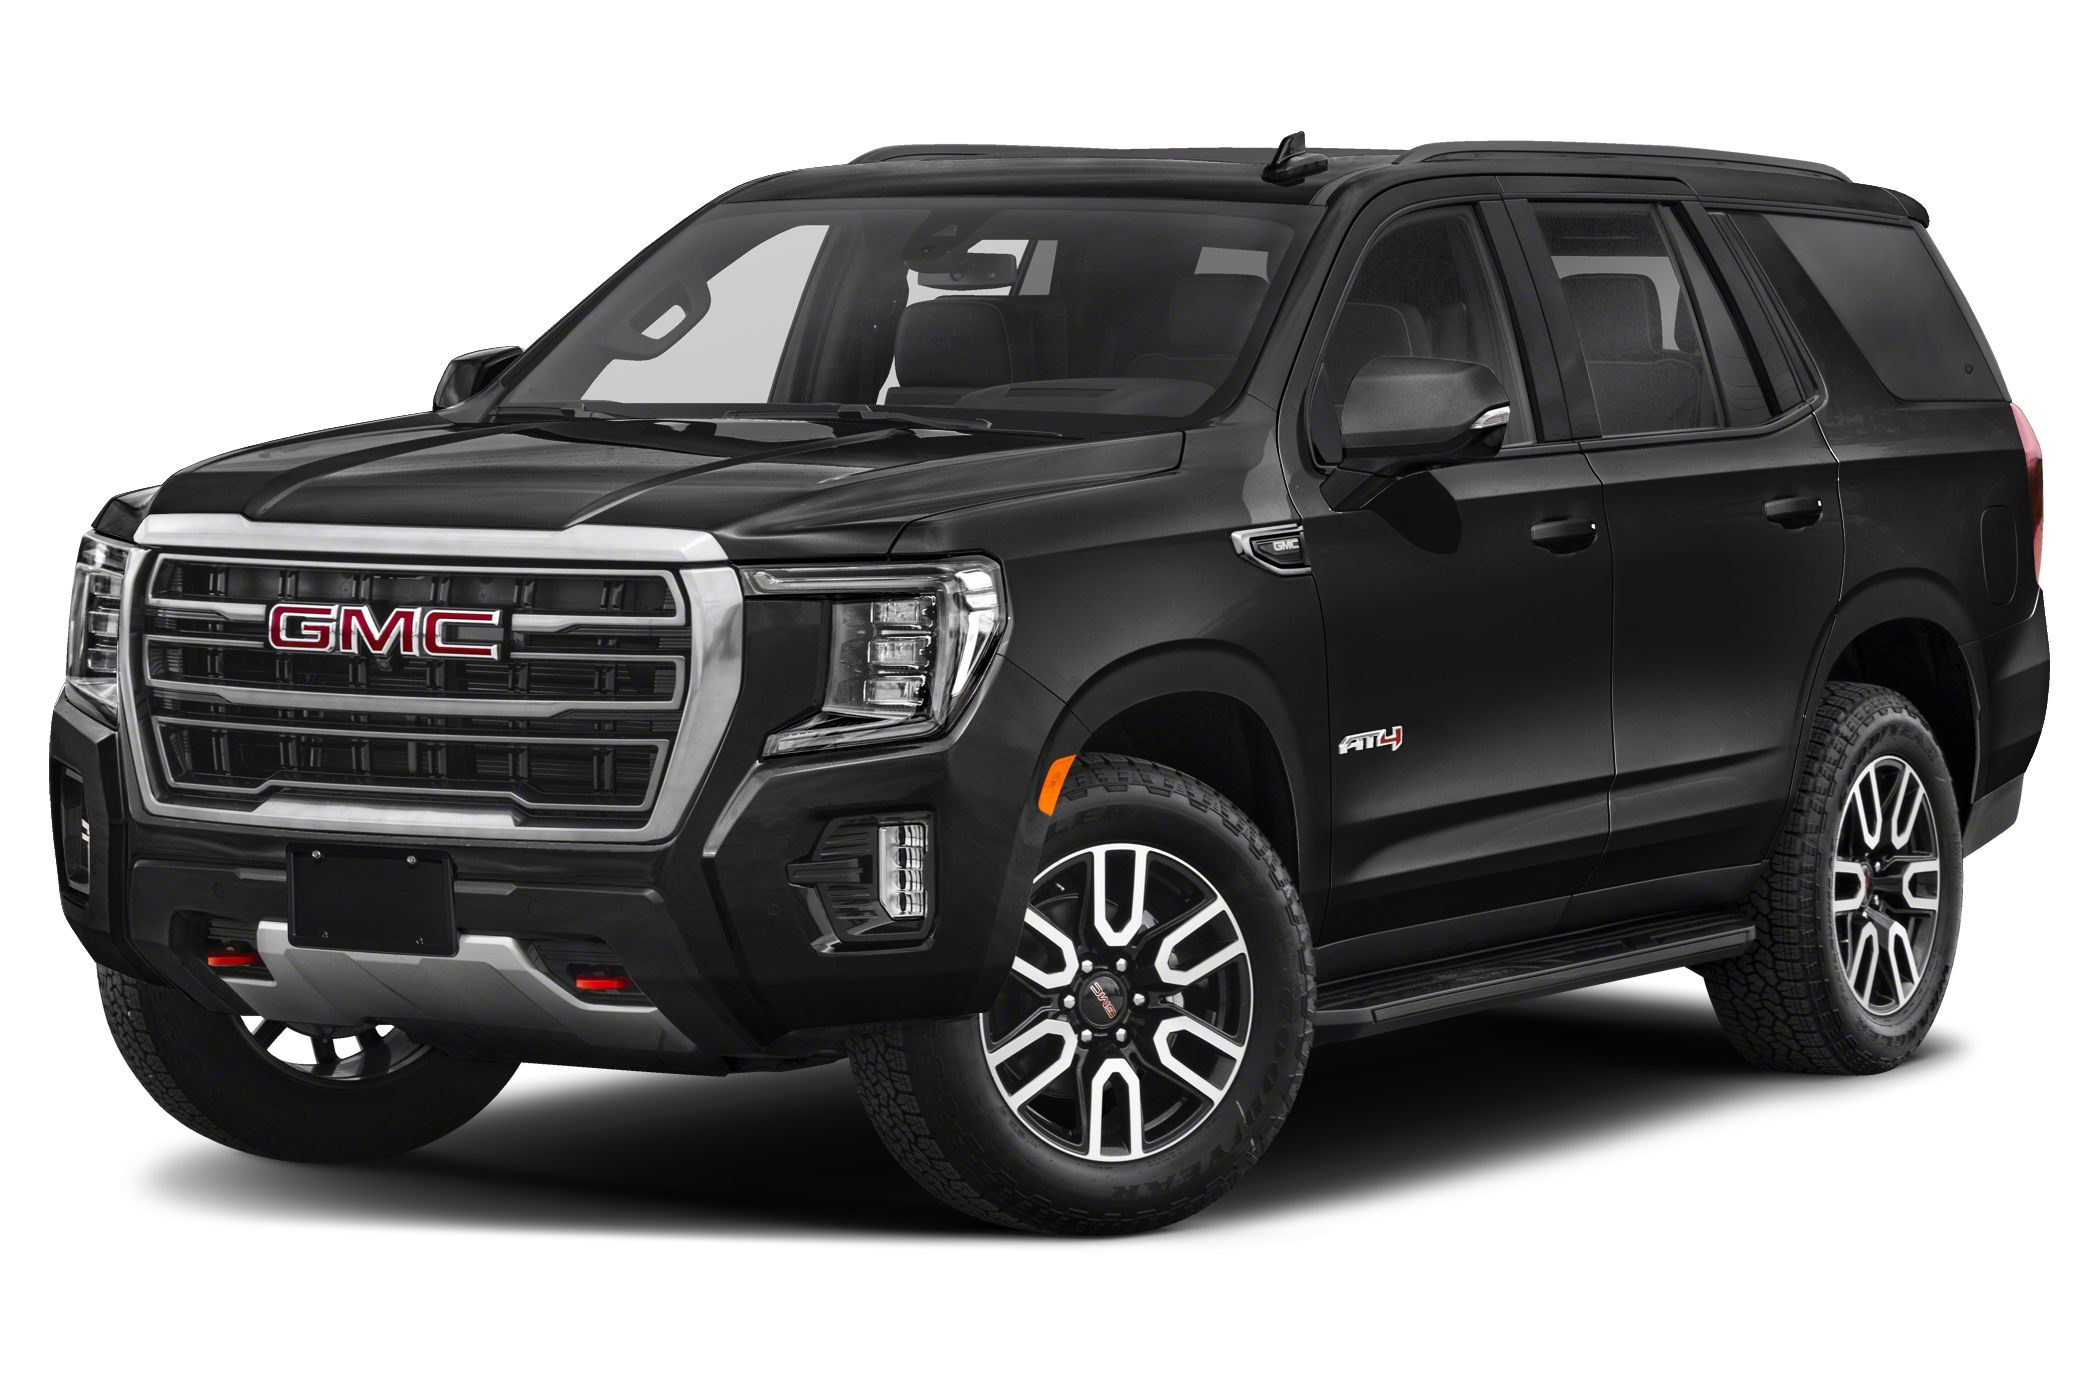 2021 Gmc Yukon At4 4x4 Pictures